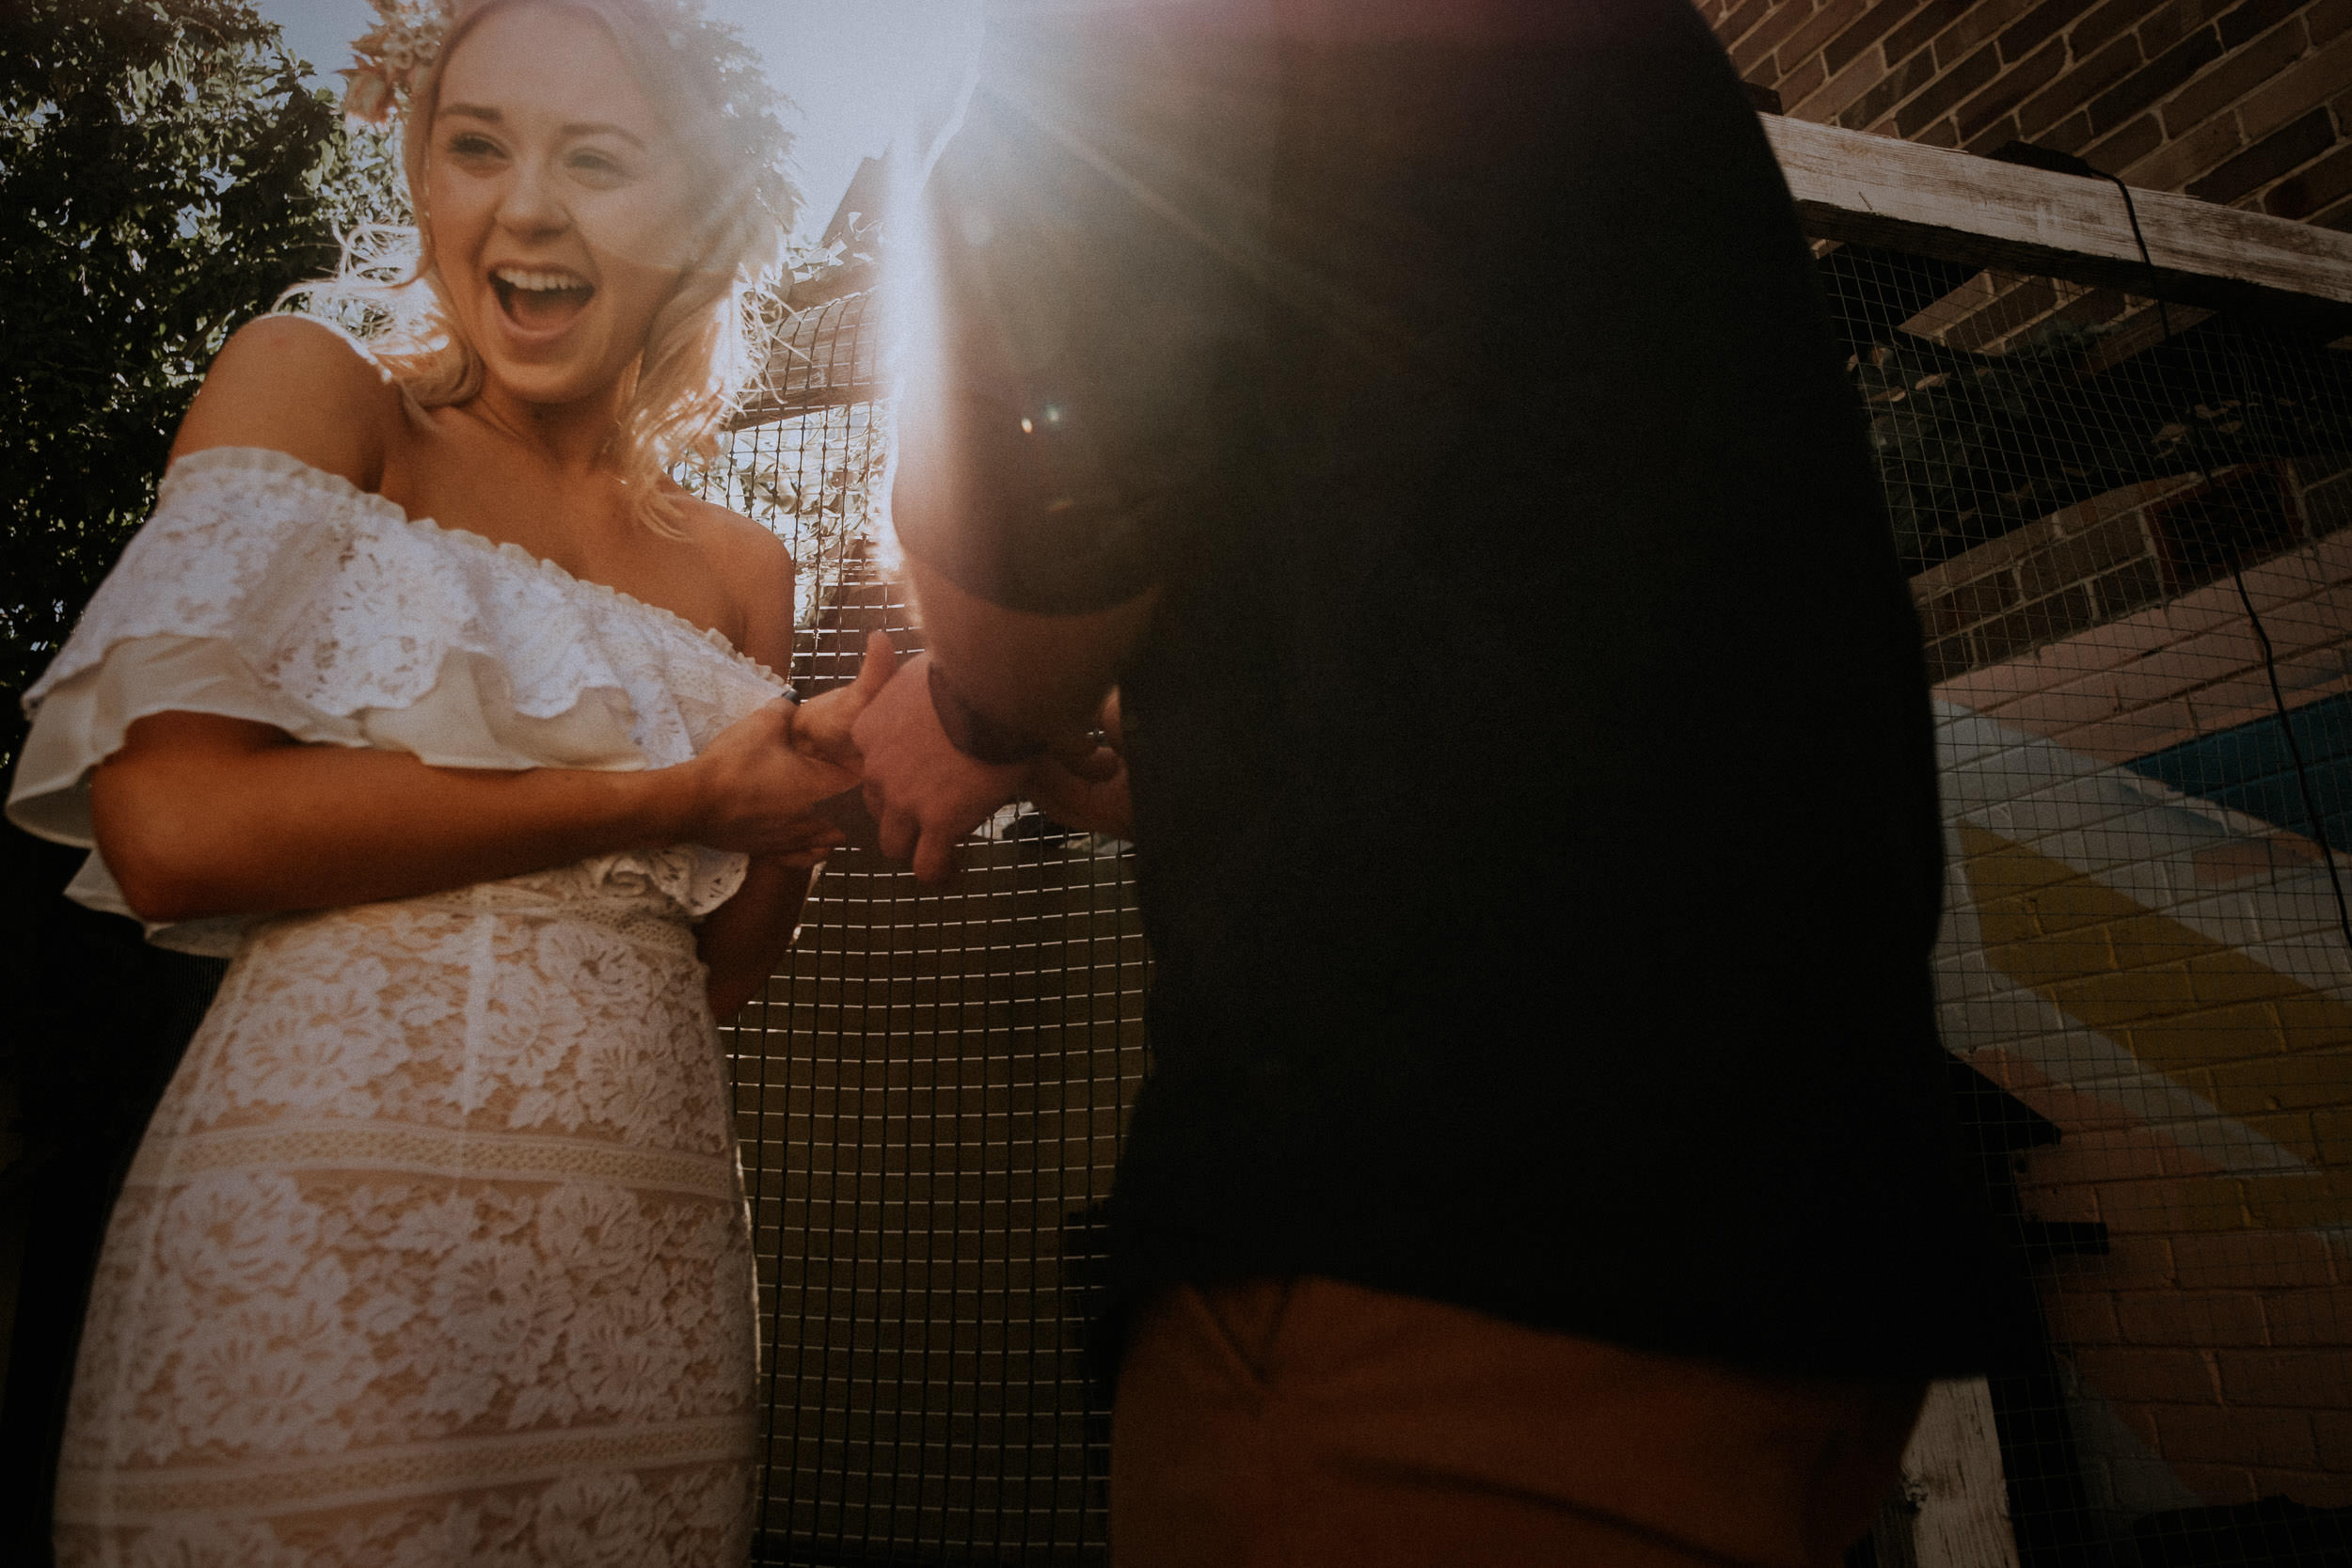 kings _ thieves - beth _ corey backyard airbnb elopement sydney - submission -149.jpg